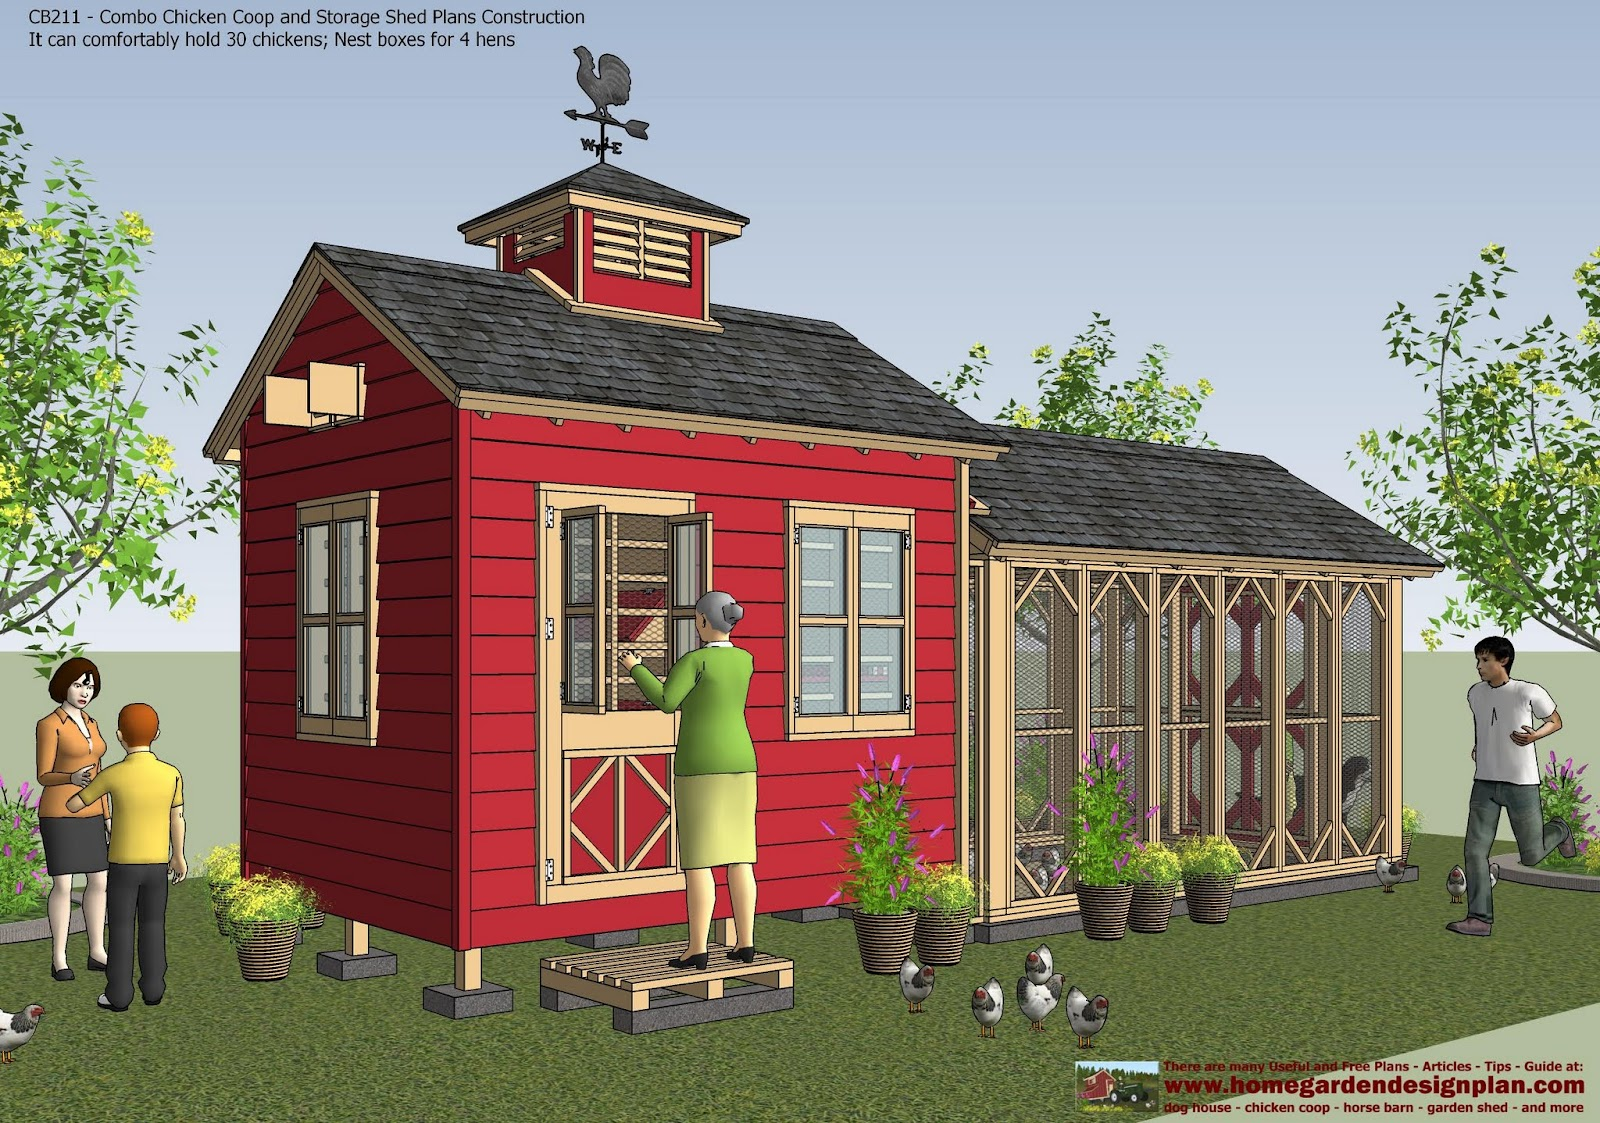 CB211   Combo Chicken Coop Garden Shed Plans